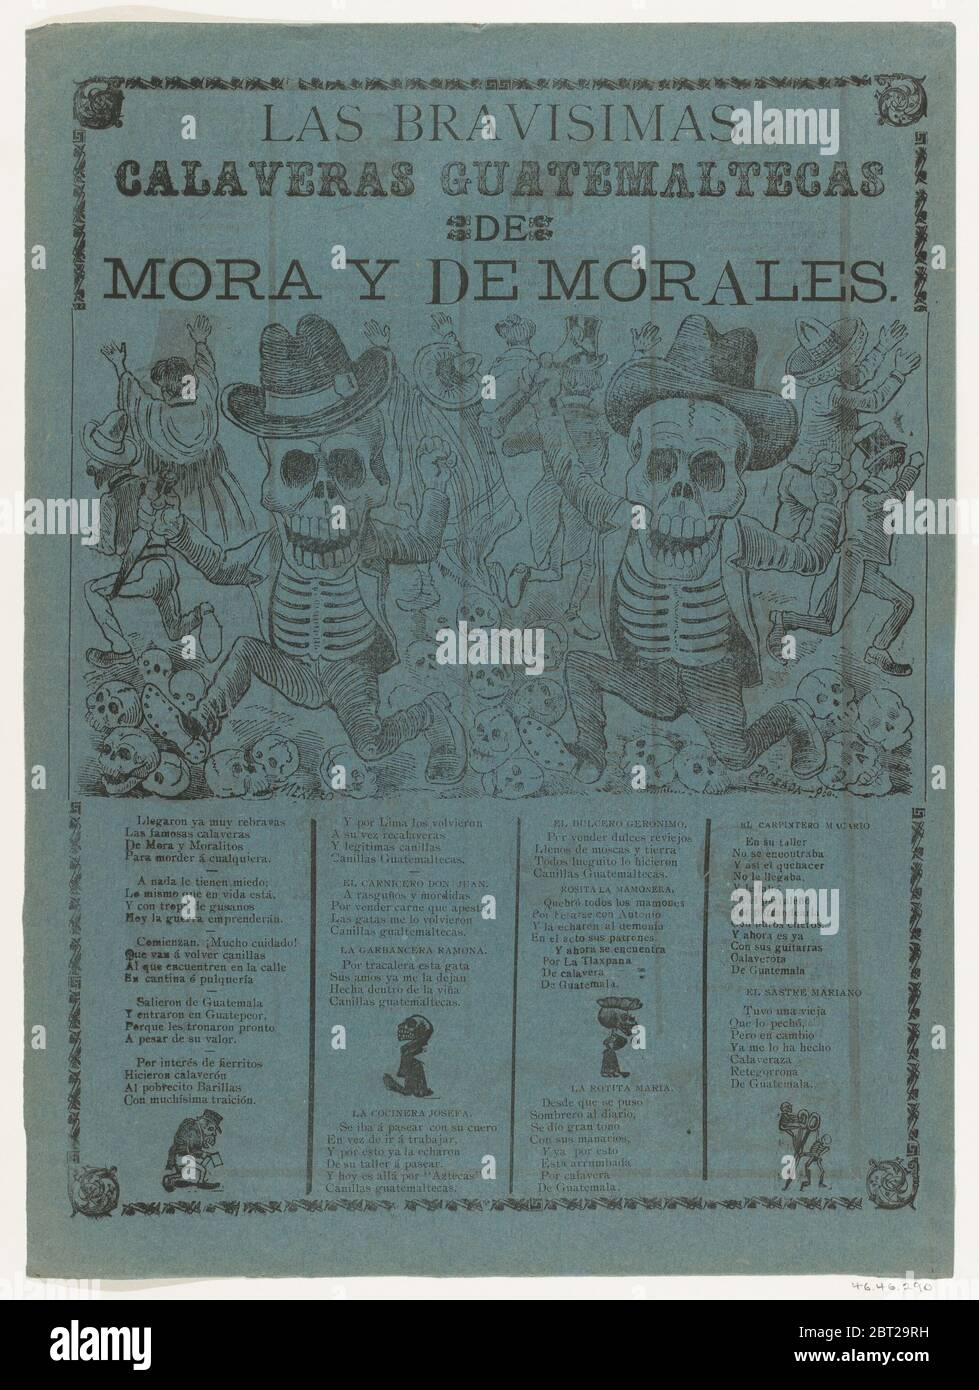 The very brave [Guatemalan] skeletons of Mora and of Morales, 1907. Stock Photo